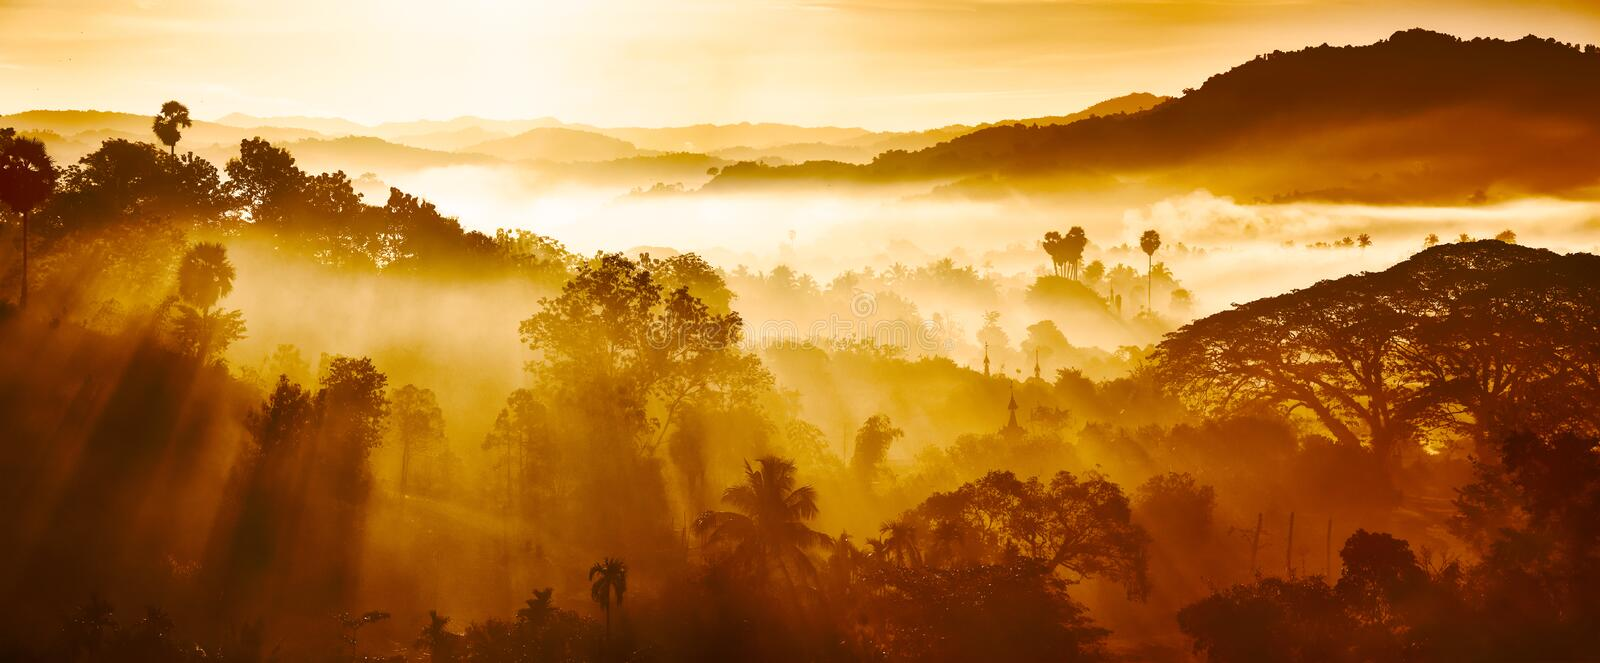 Beautiful Landscape of mountains and rainforest in early morning sun rays and fog in Myanmar royalty free stock photos